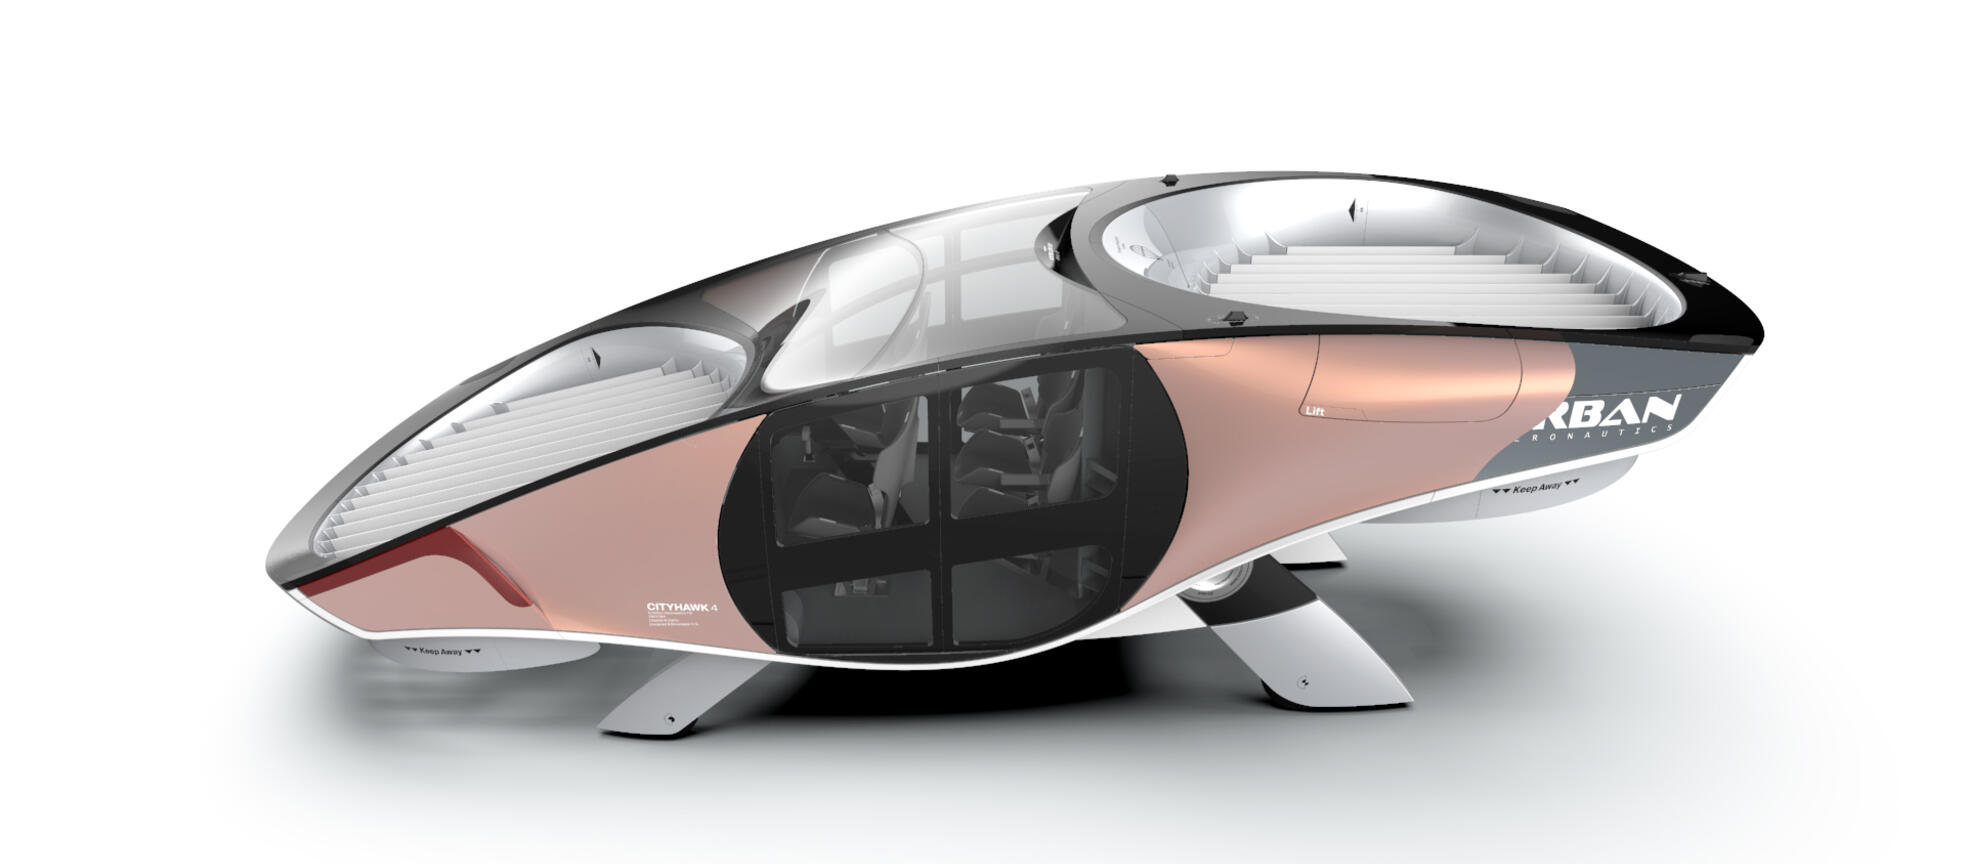 <p>CityHawk: a safe, quiet and sustainable 'car-sized' urban aircraft</p>